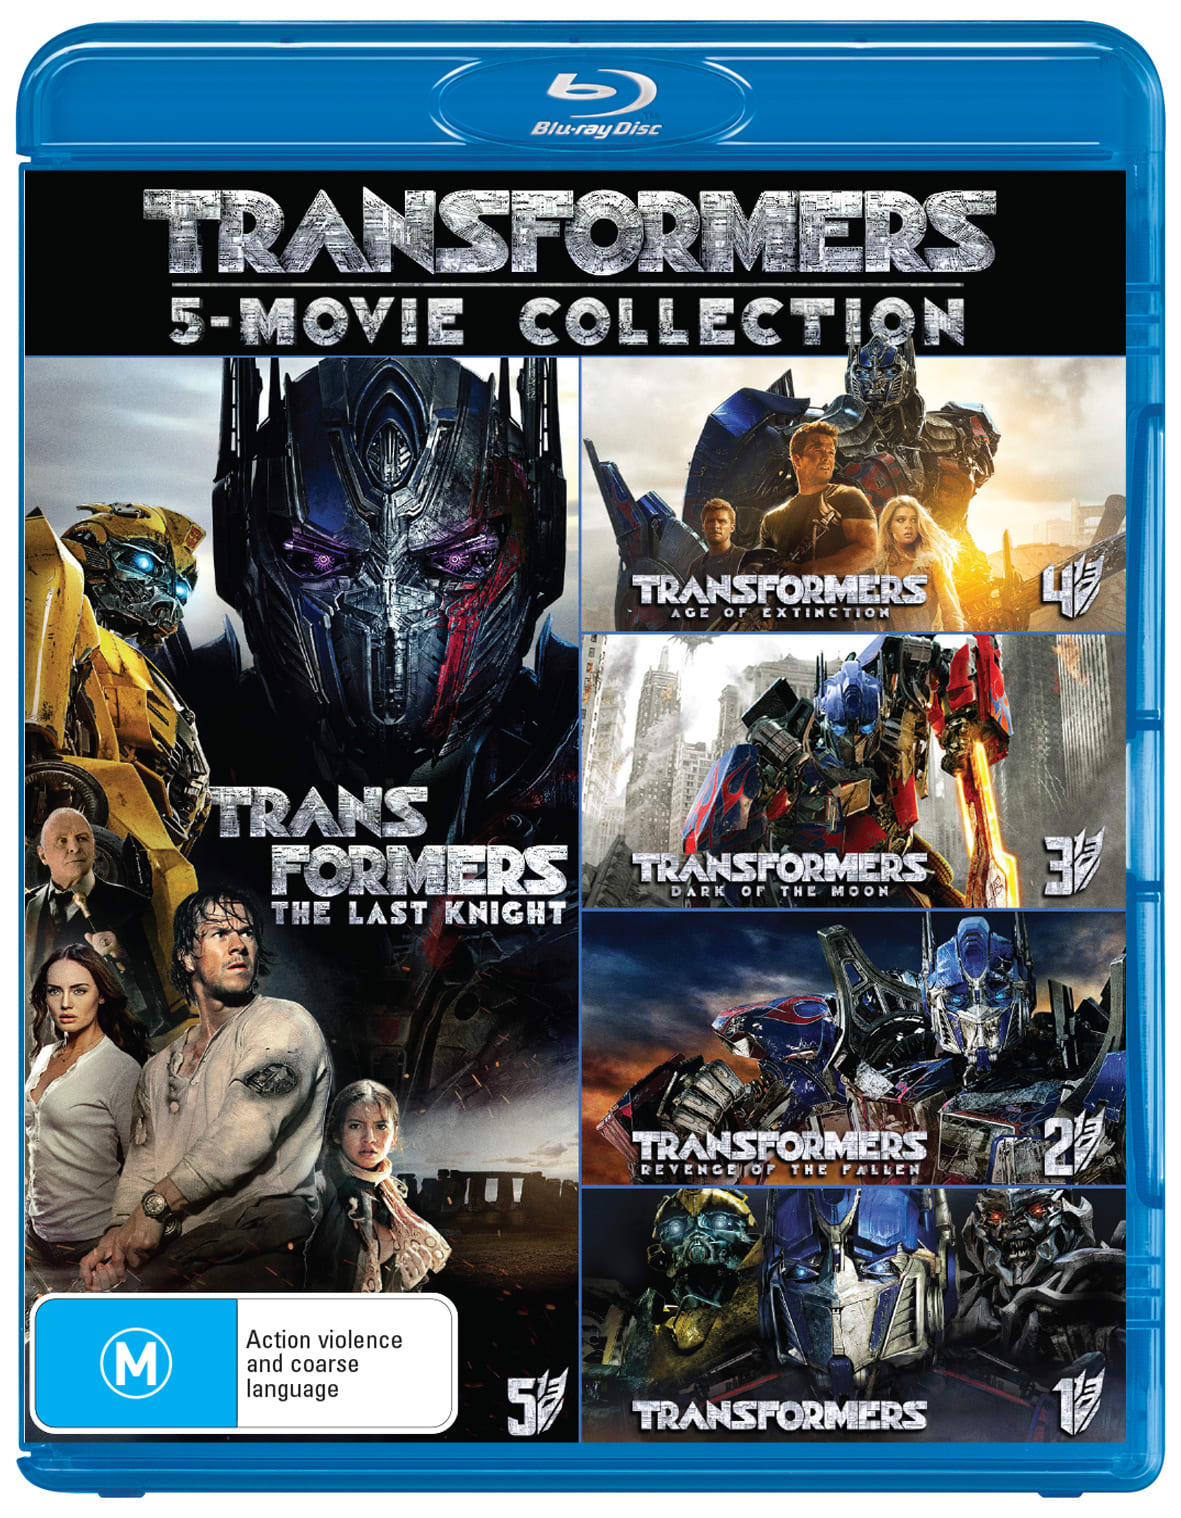 Transformers: 5-movie Collection [Blu-ray]